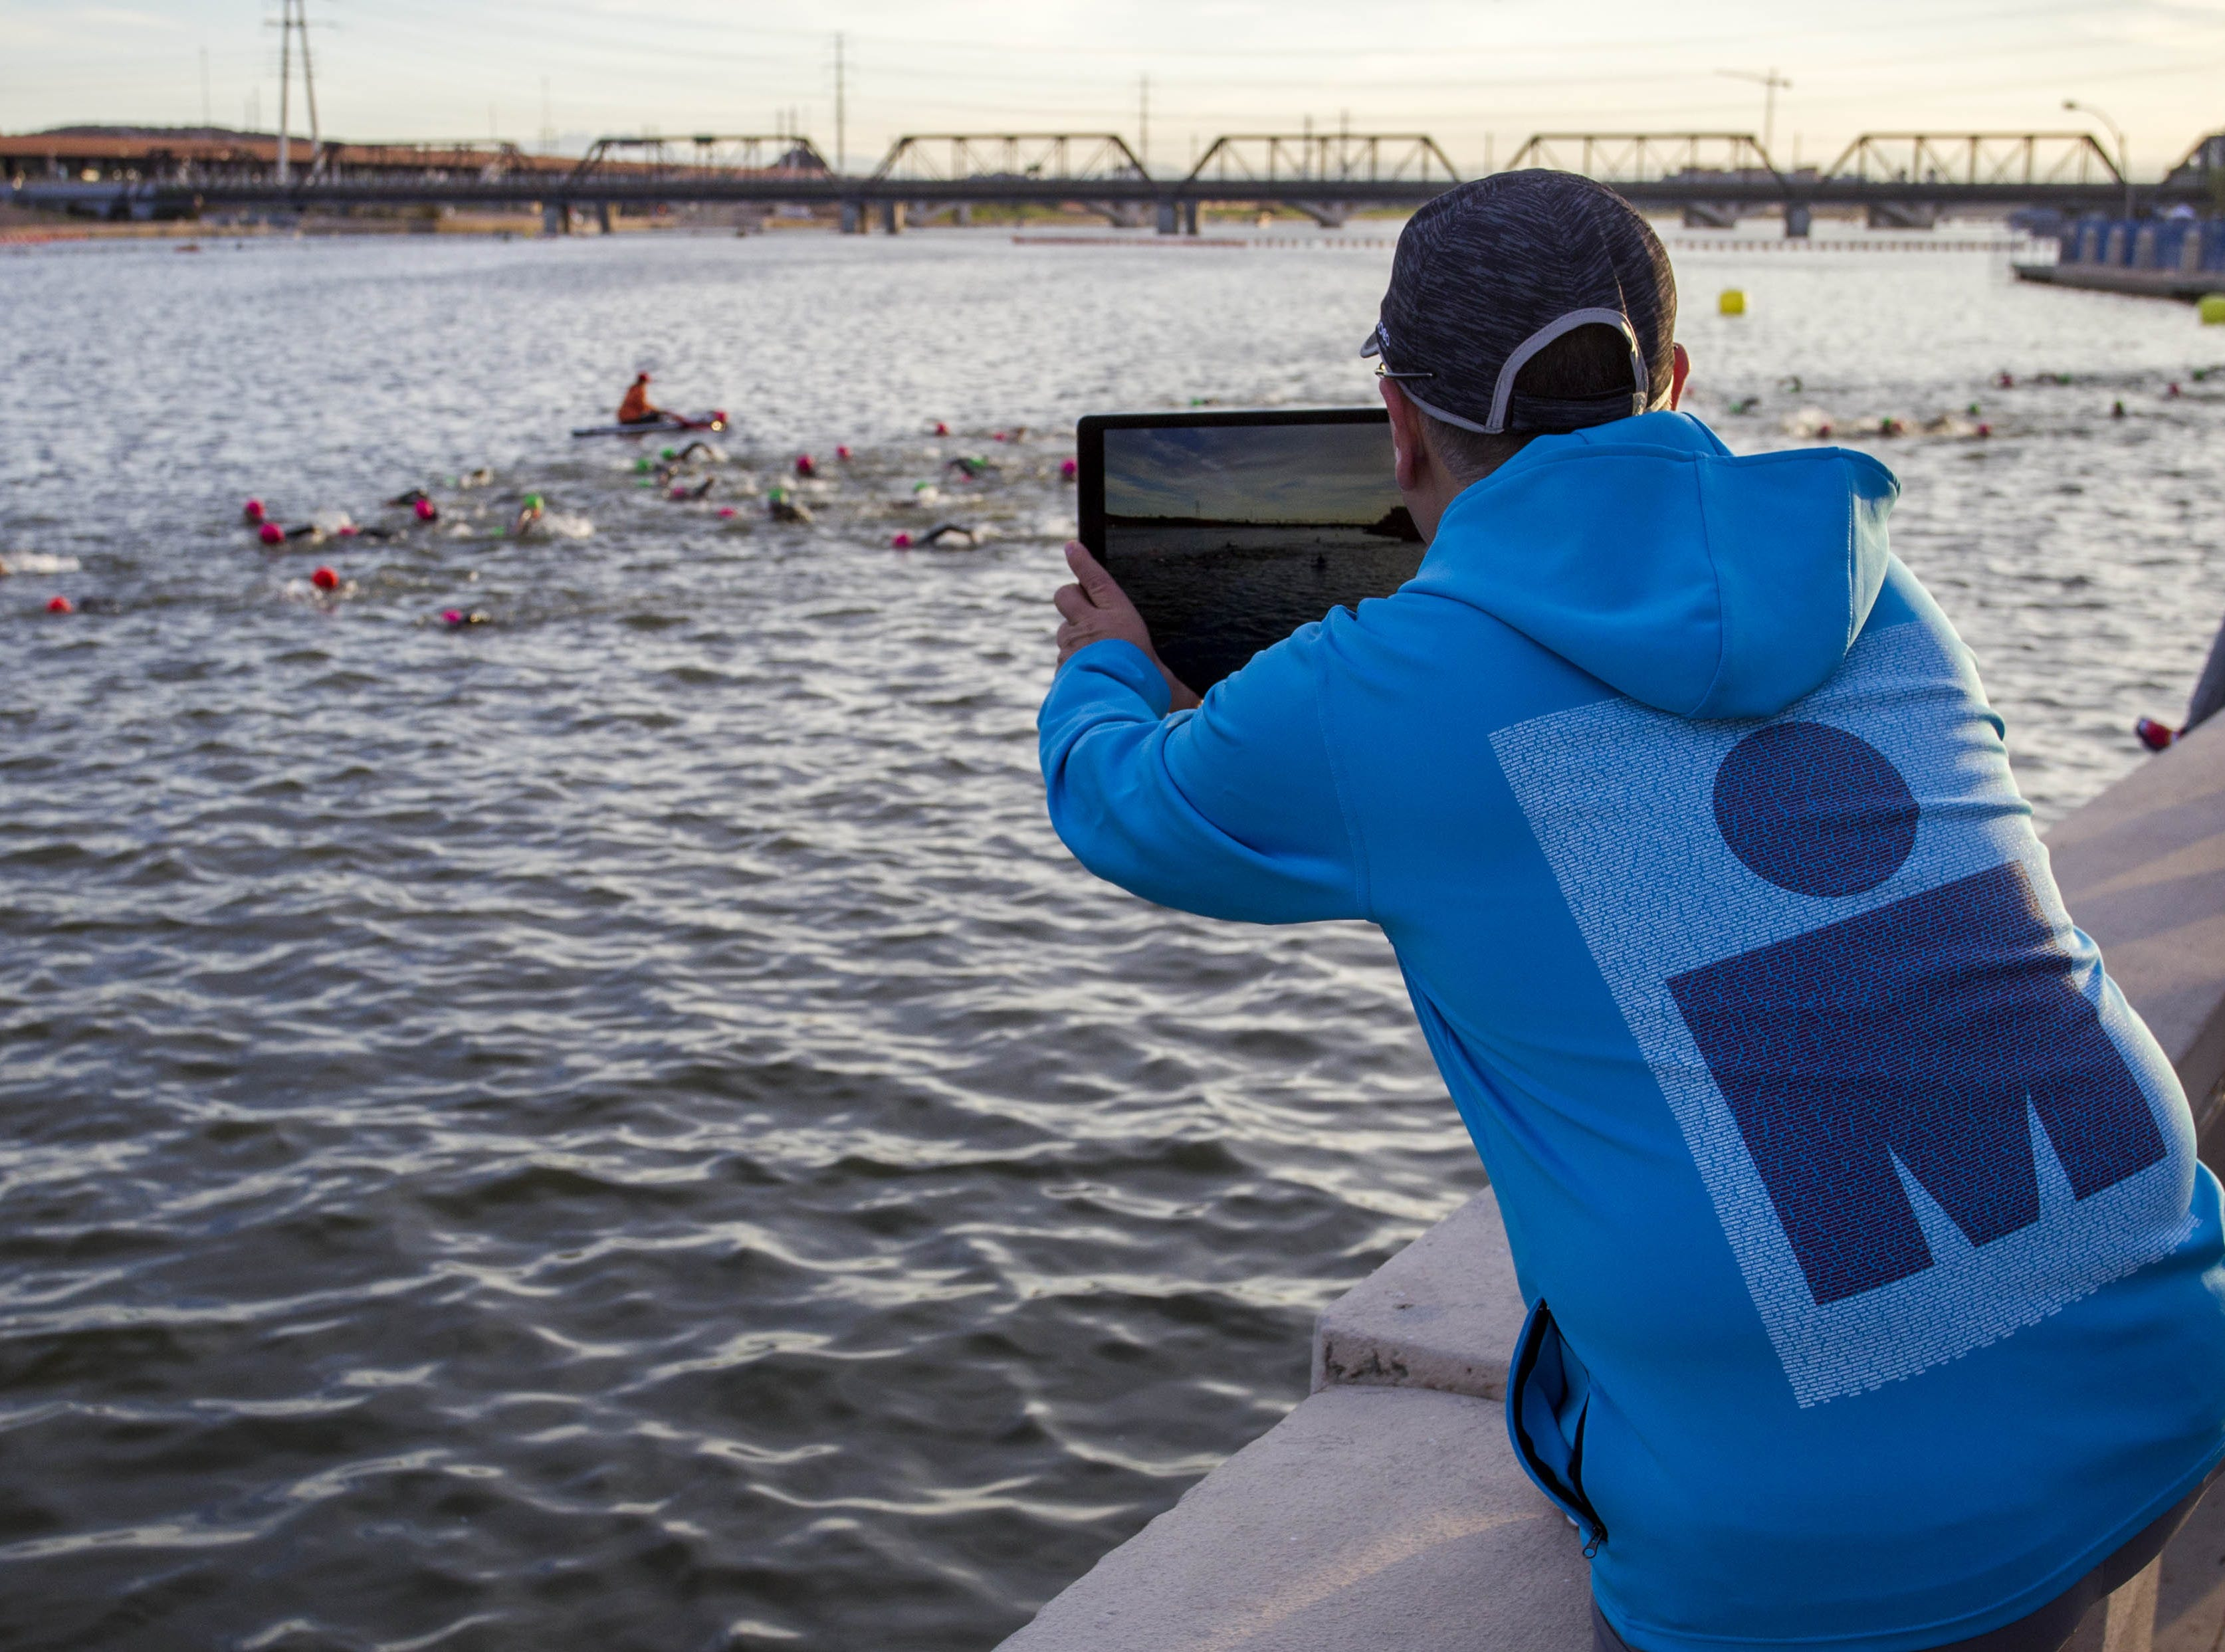 A fan of Ironman competitors records them as they start their day swimming during the Tempe Ironman at Tempe Town Lake Nov.18, 2018.